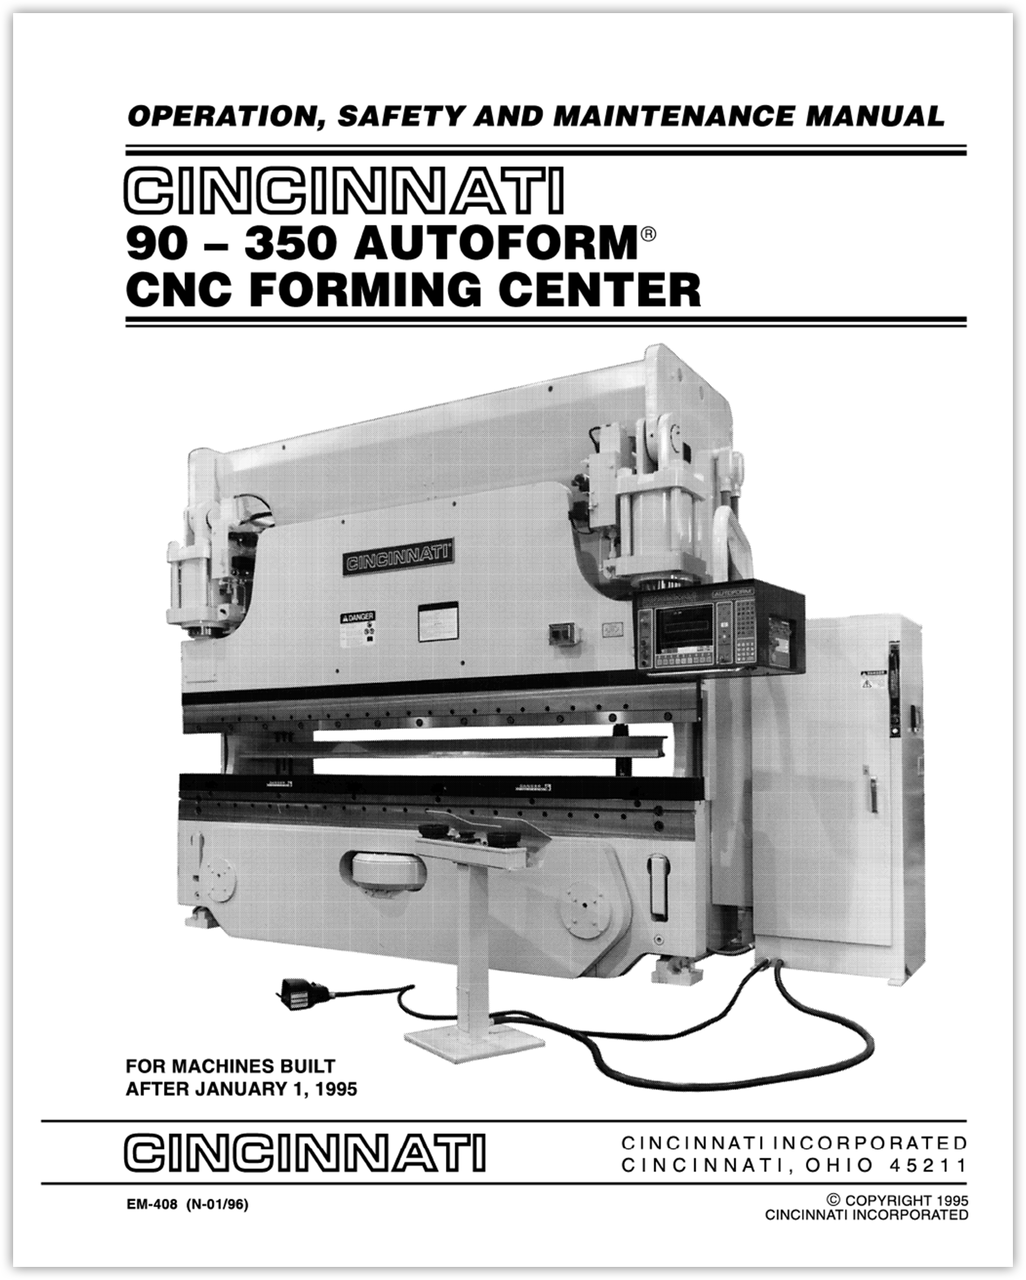 EM-408 (N-01-96) 90-350 Autoform CNC Forming Center Operation, Safety and Maintenance Manual - For machines built after January 1, 1995